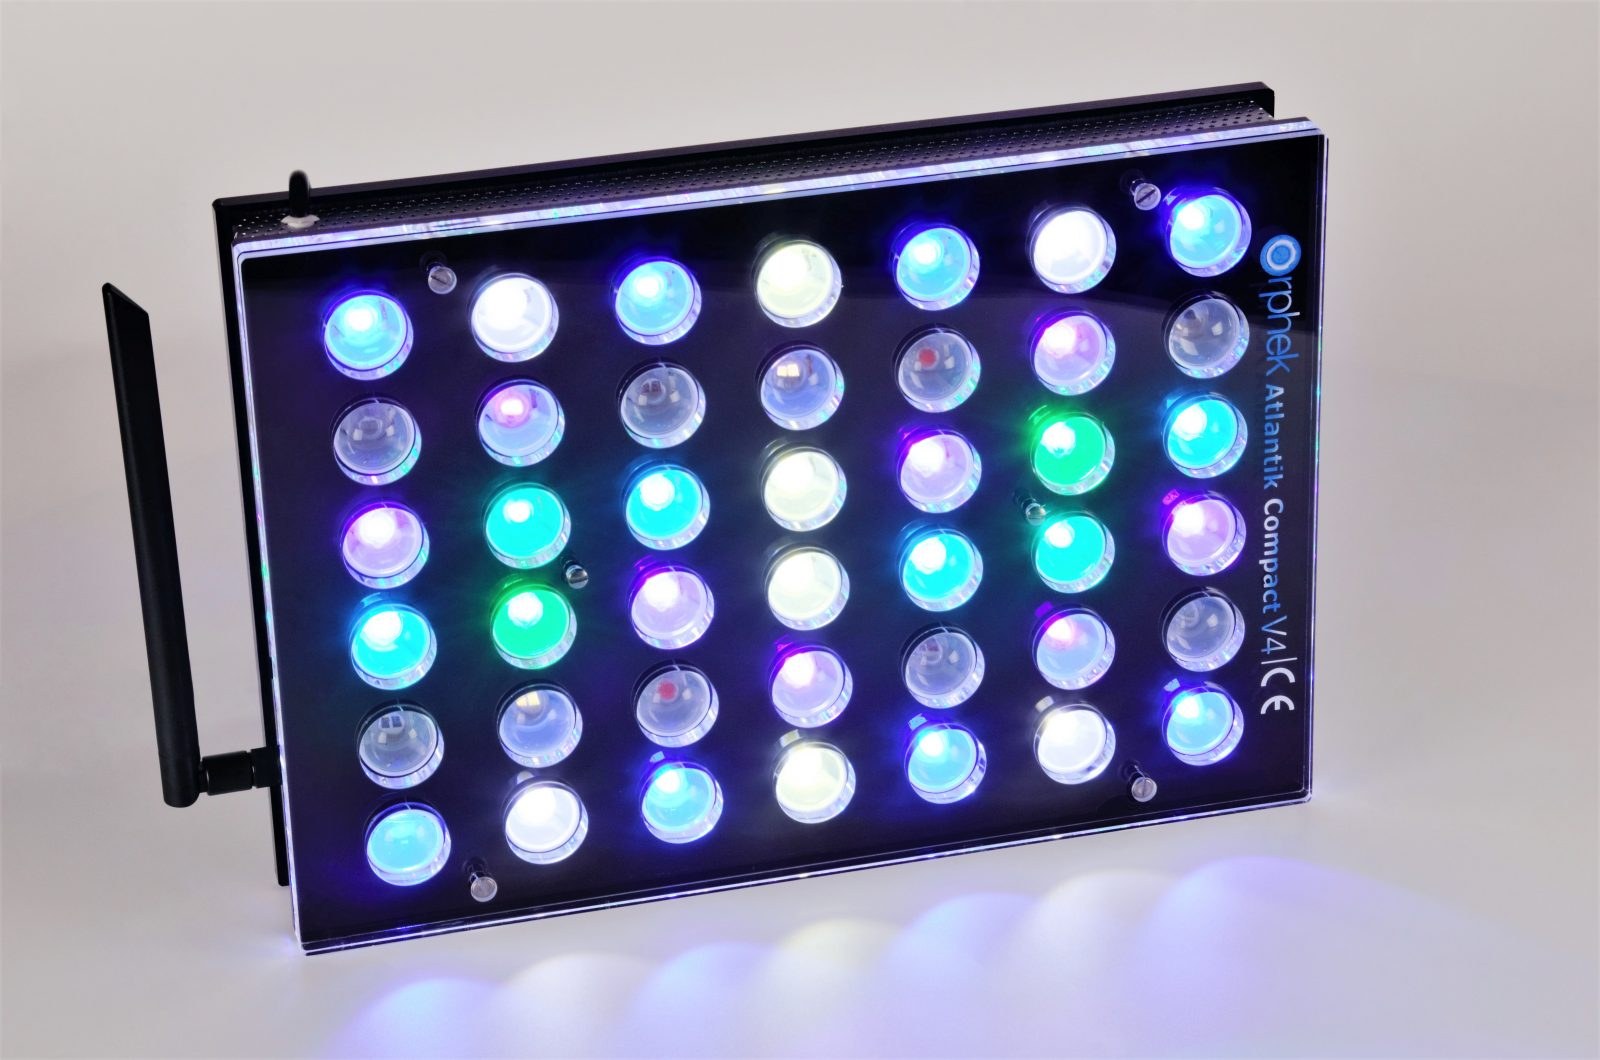 Orphek-Aquarium-LED-Lighting-Atlantik -Compact-V4-light -on -channel 1 + 2 + 3